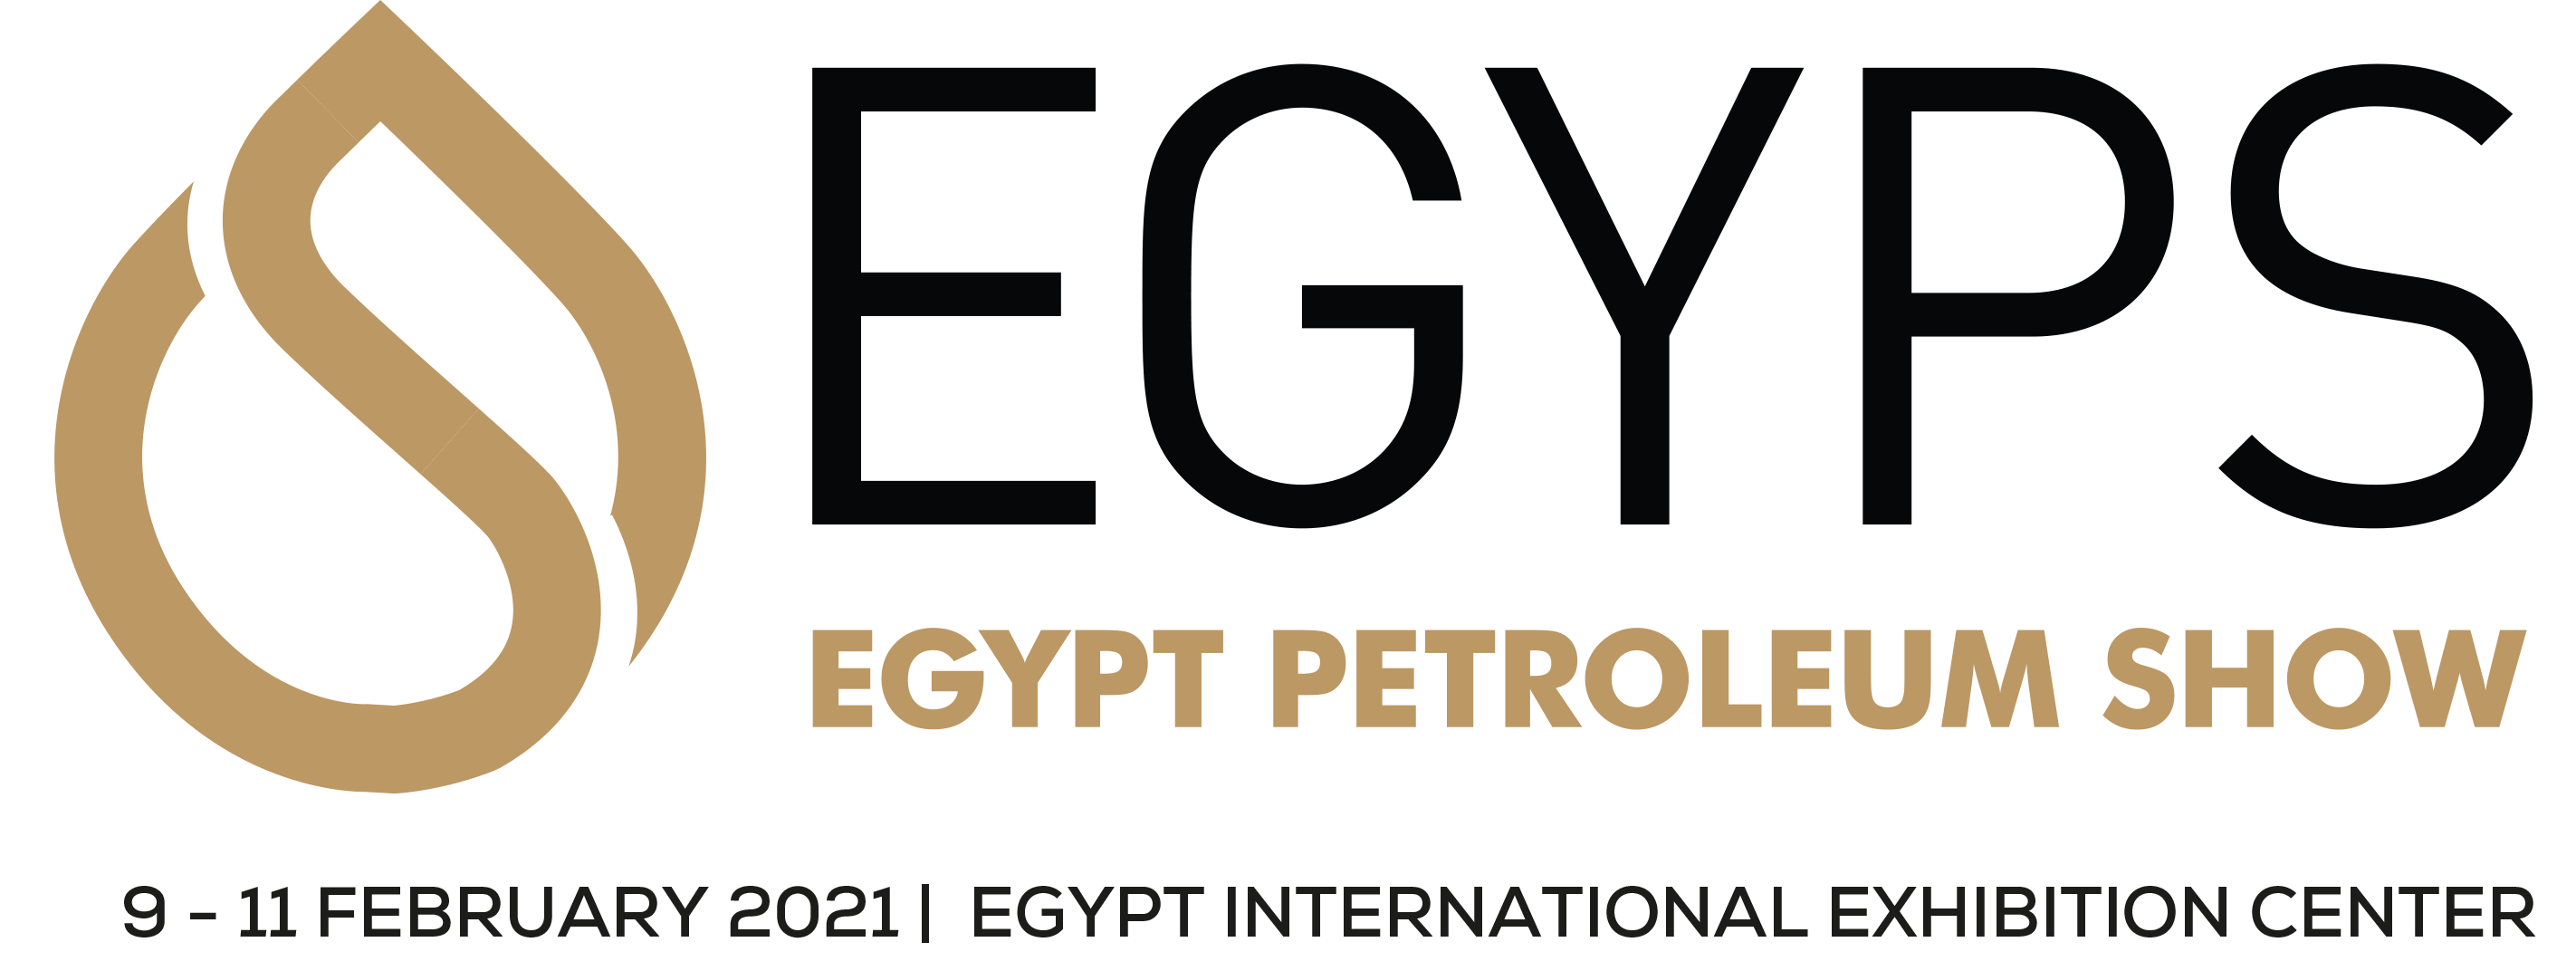 egyps-logo-2021--orginal.png